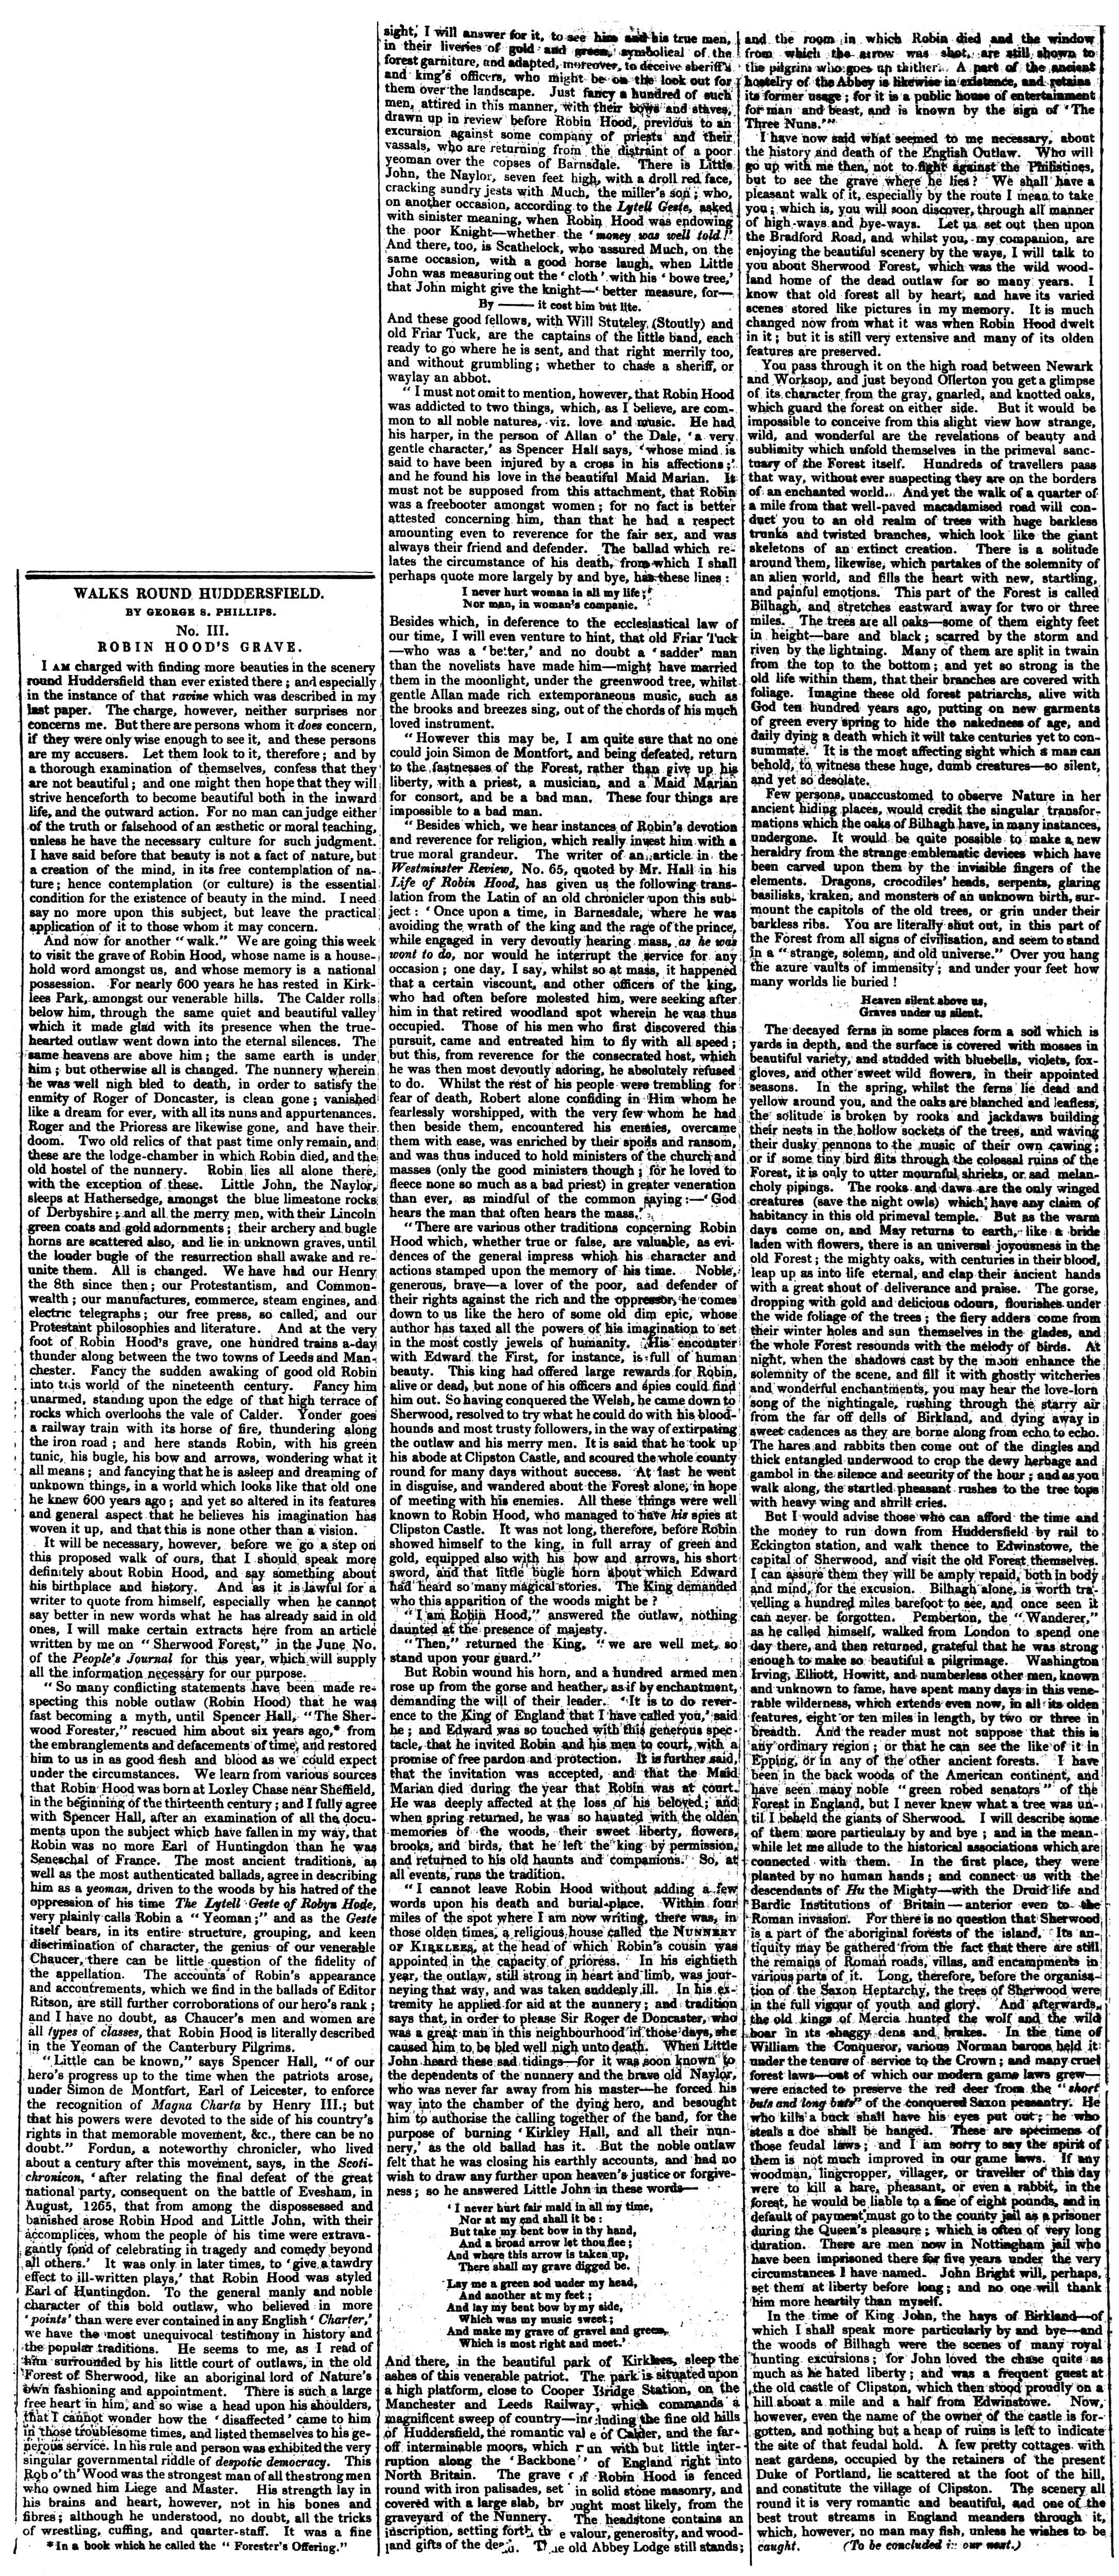 Bradford and Wakefield Observer 30 September 1847.png